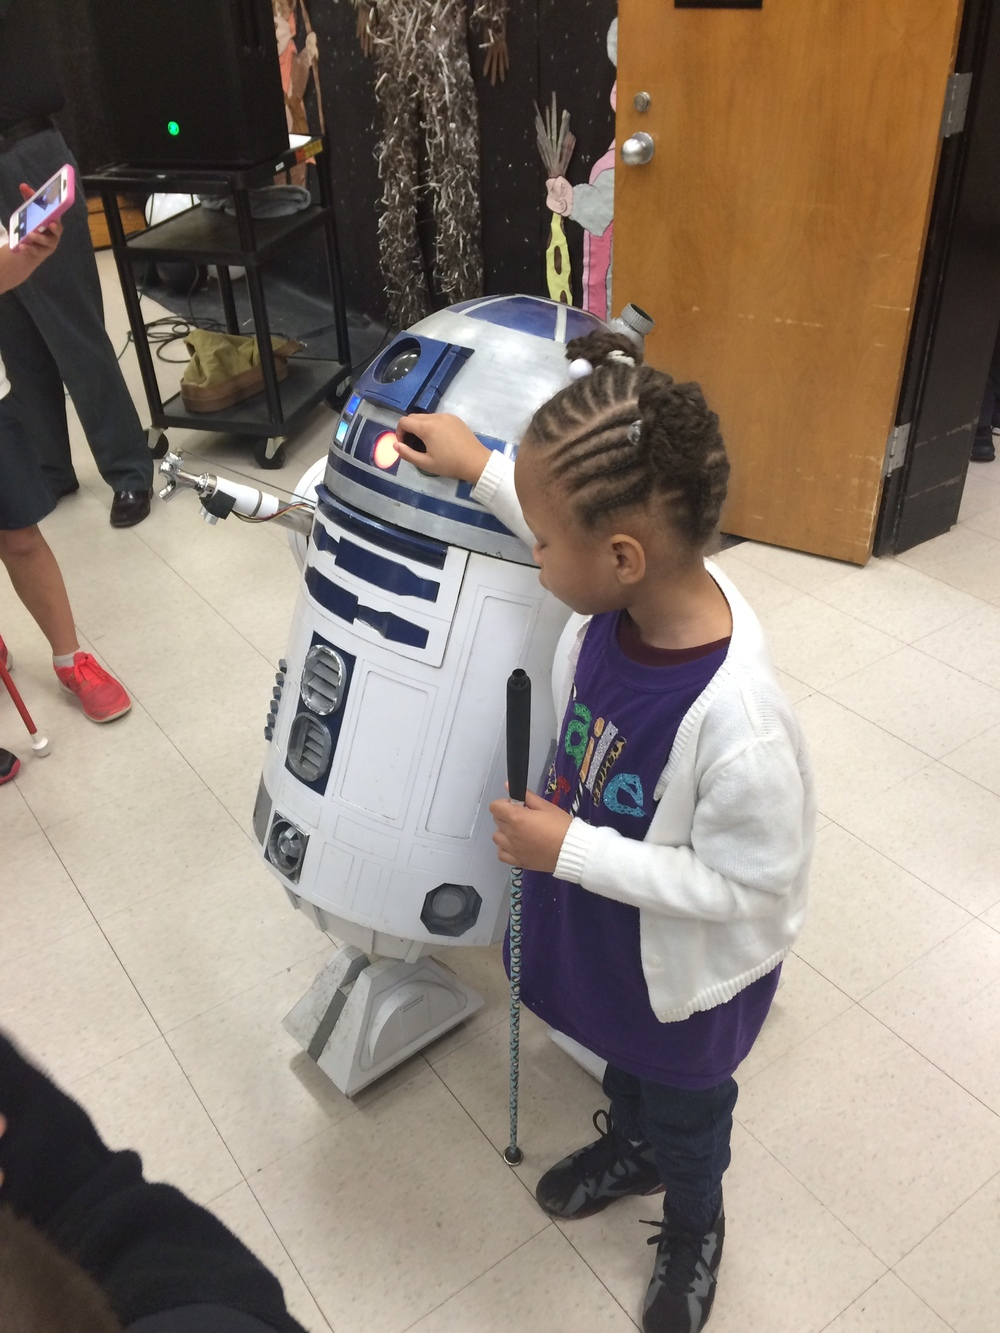 Passion checking out R2D2 at Braille Challenge